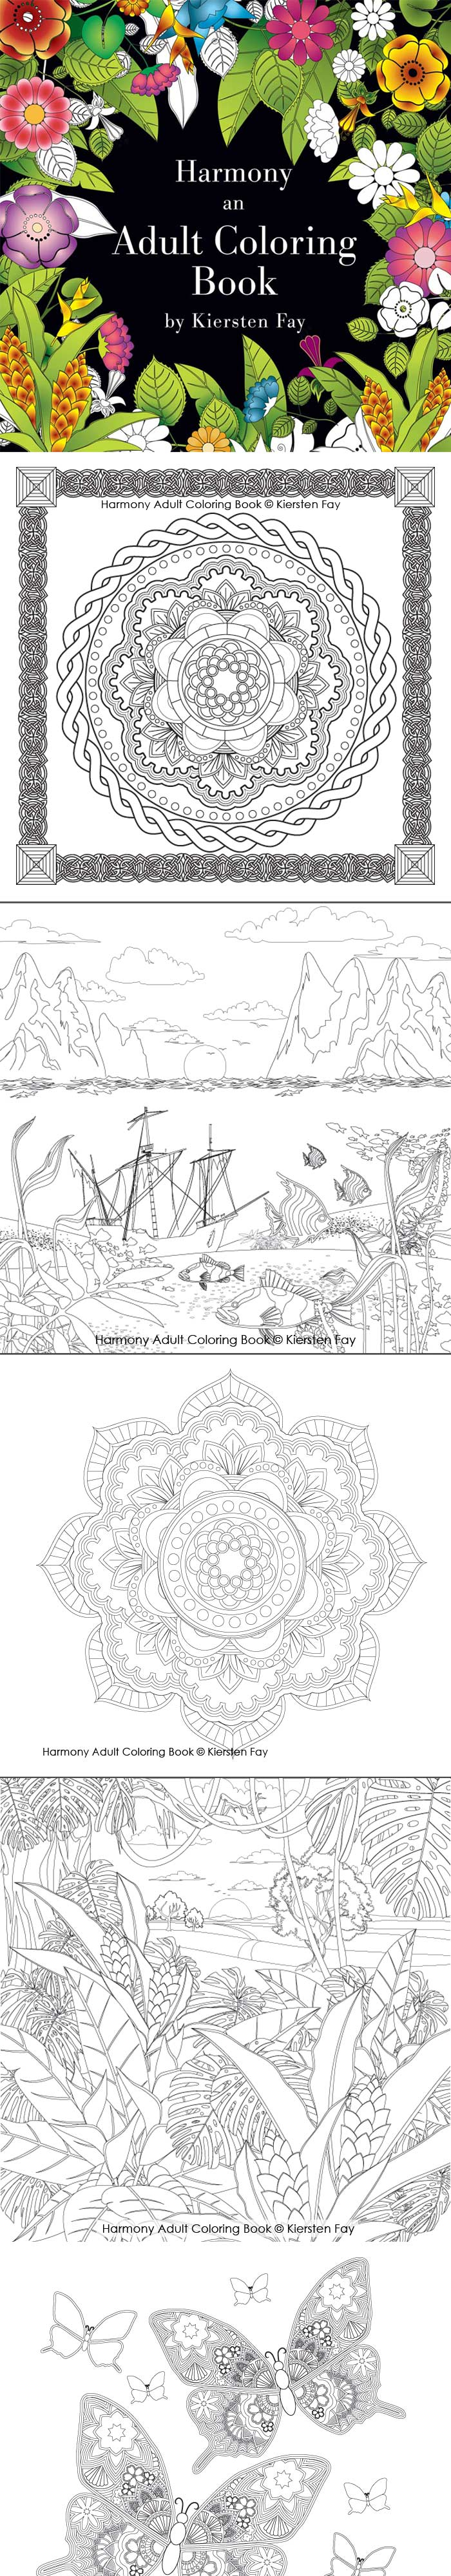 Harmony Adult Coloring Book